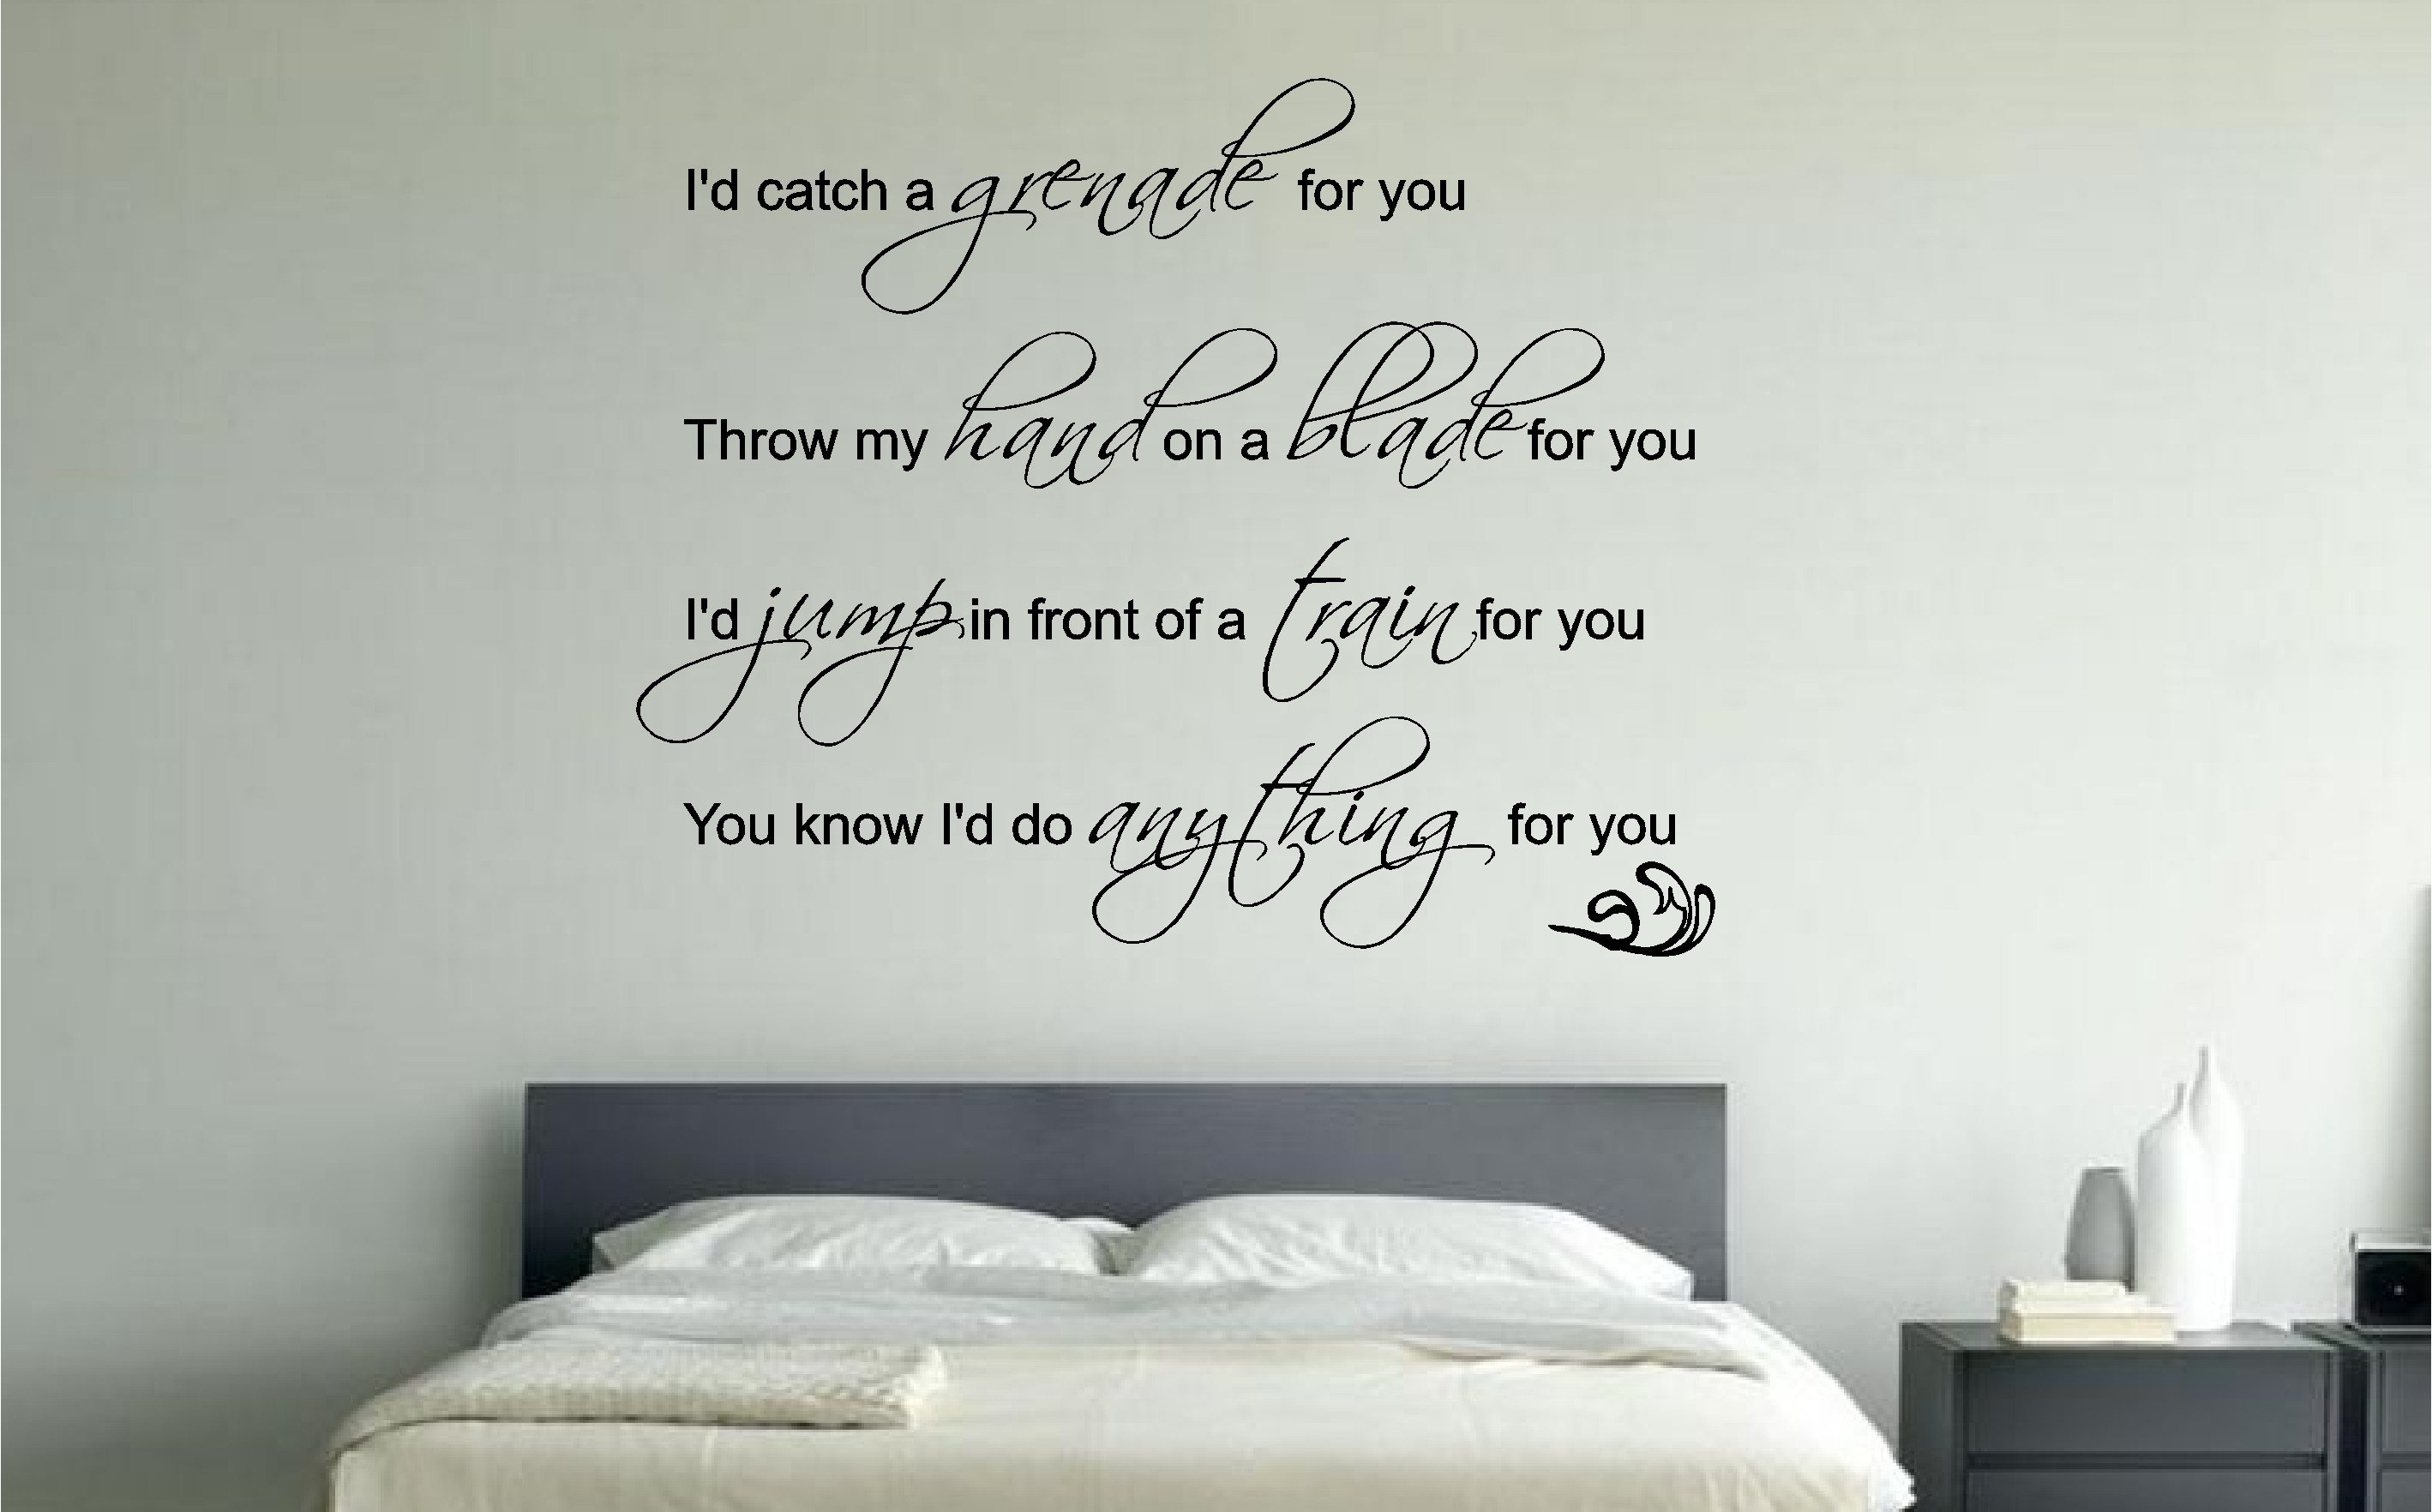 Best Bruno Mars Grenade Lyrics Music Wall Art Sticker Decal Bedroom Lounge Ebay With Pictures